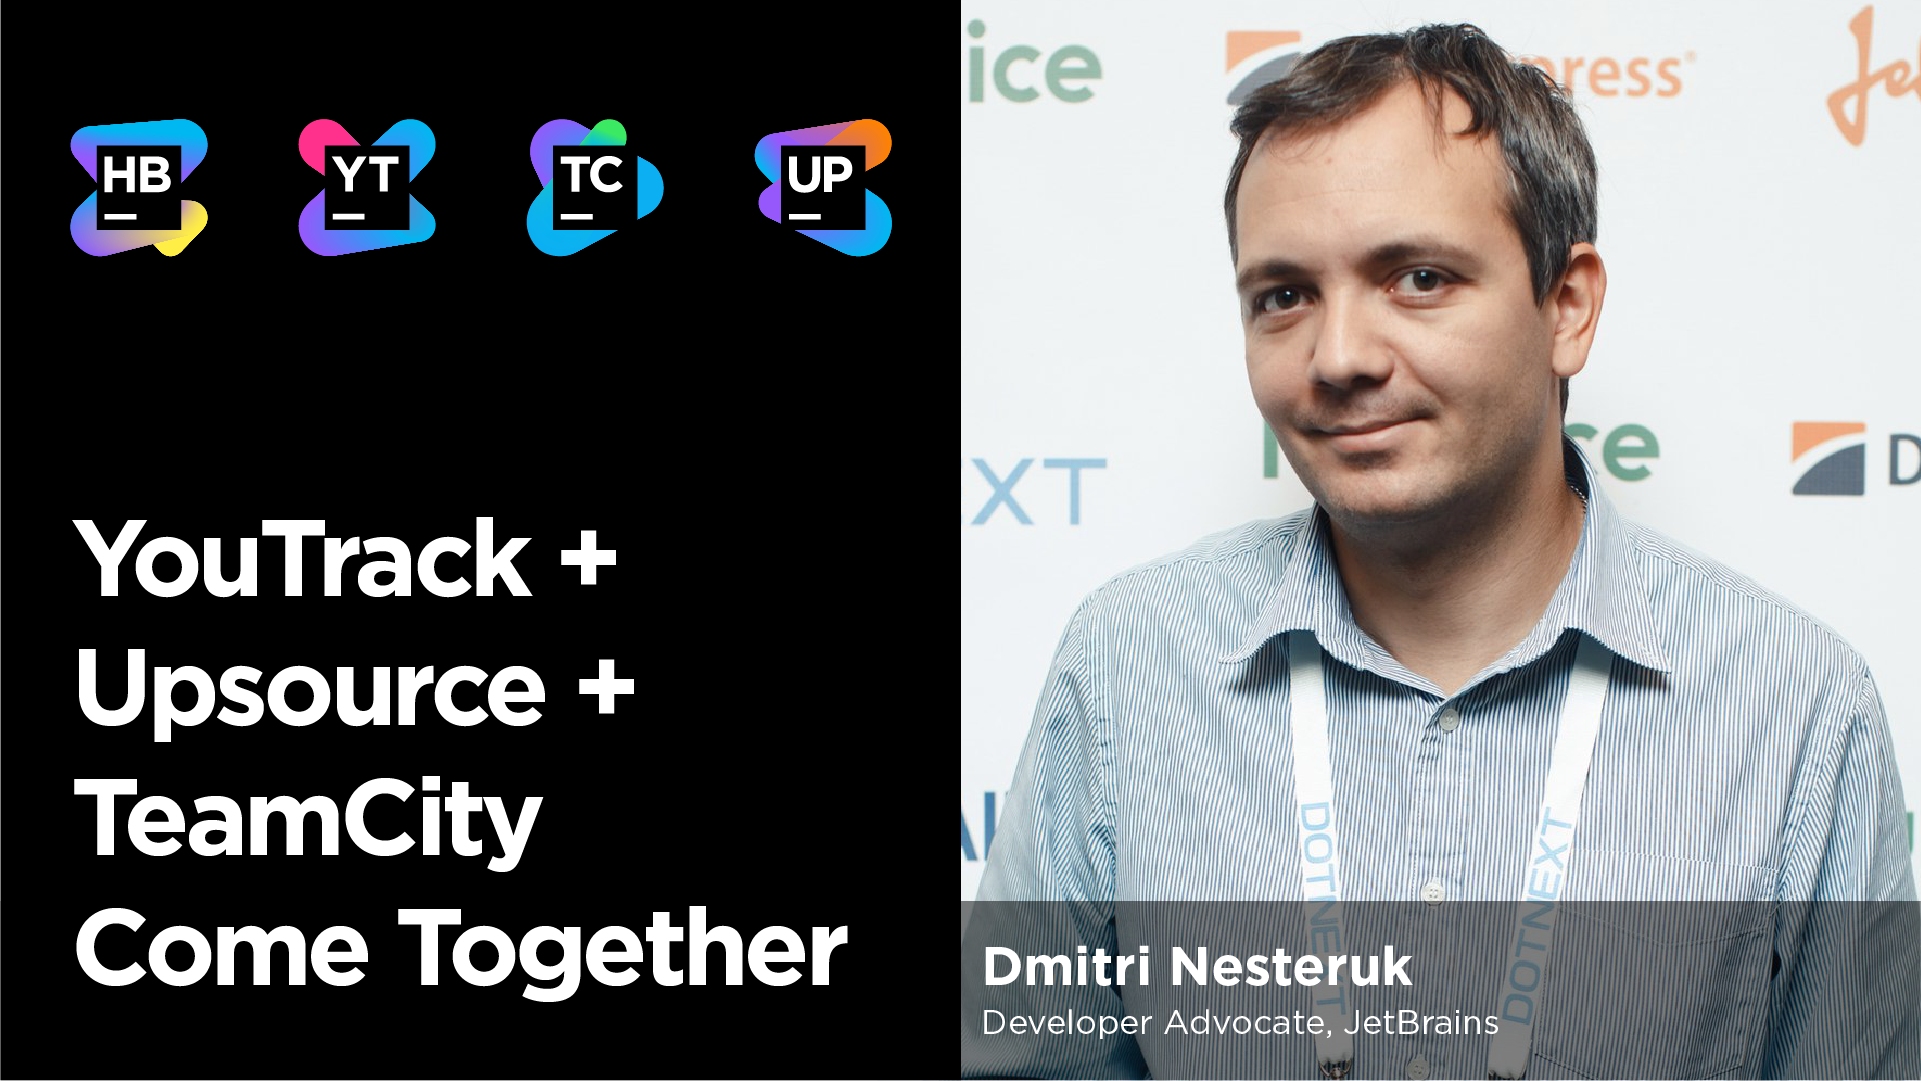 hub_webinar_YouTrack+Upsource+TeamCity_Come_Together_2